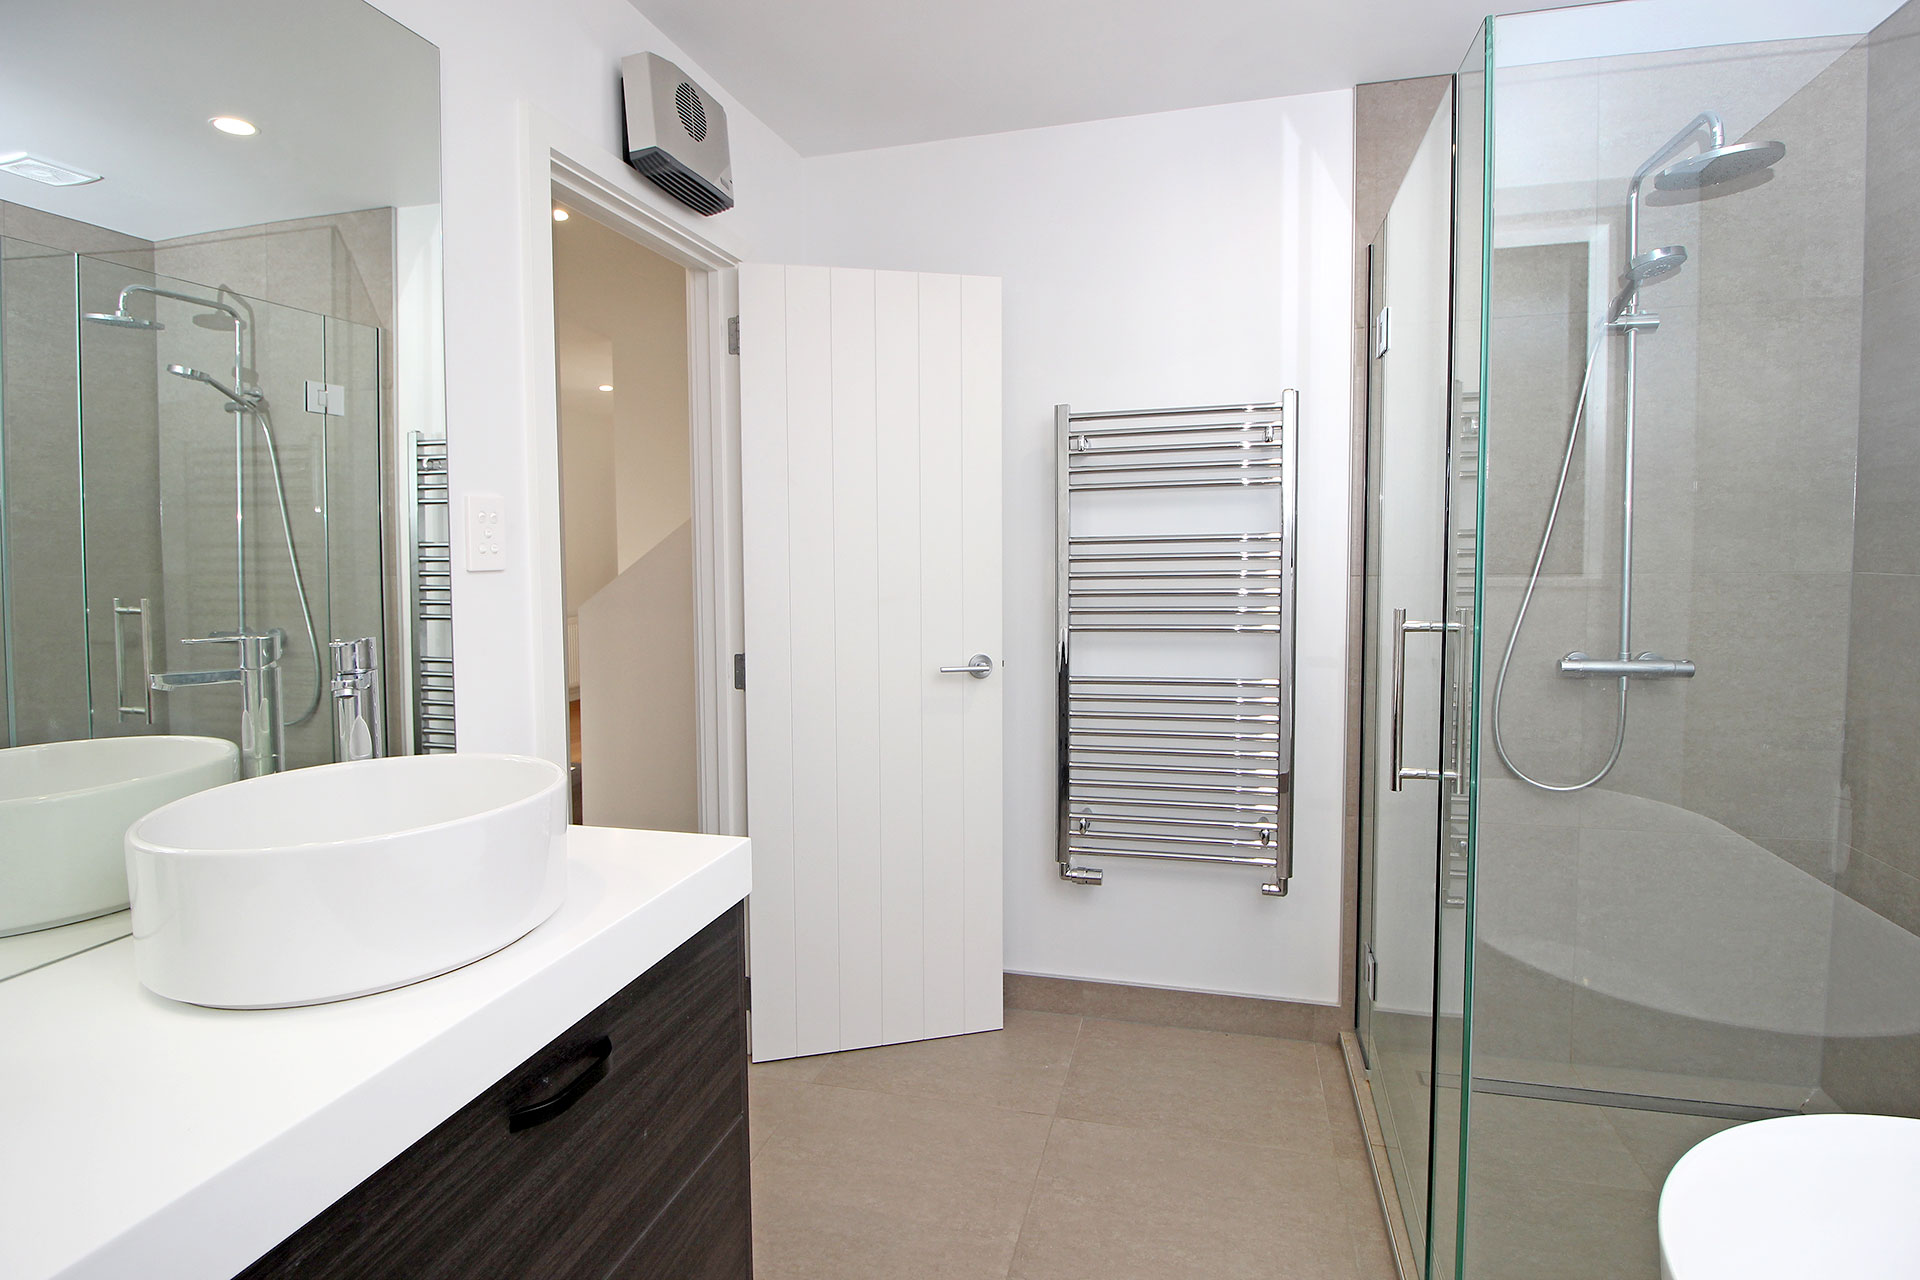 Heating Modern Revamp Build Bathroom Towel Rail Richmond